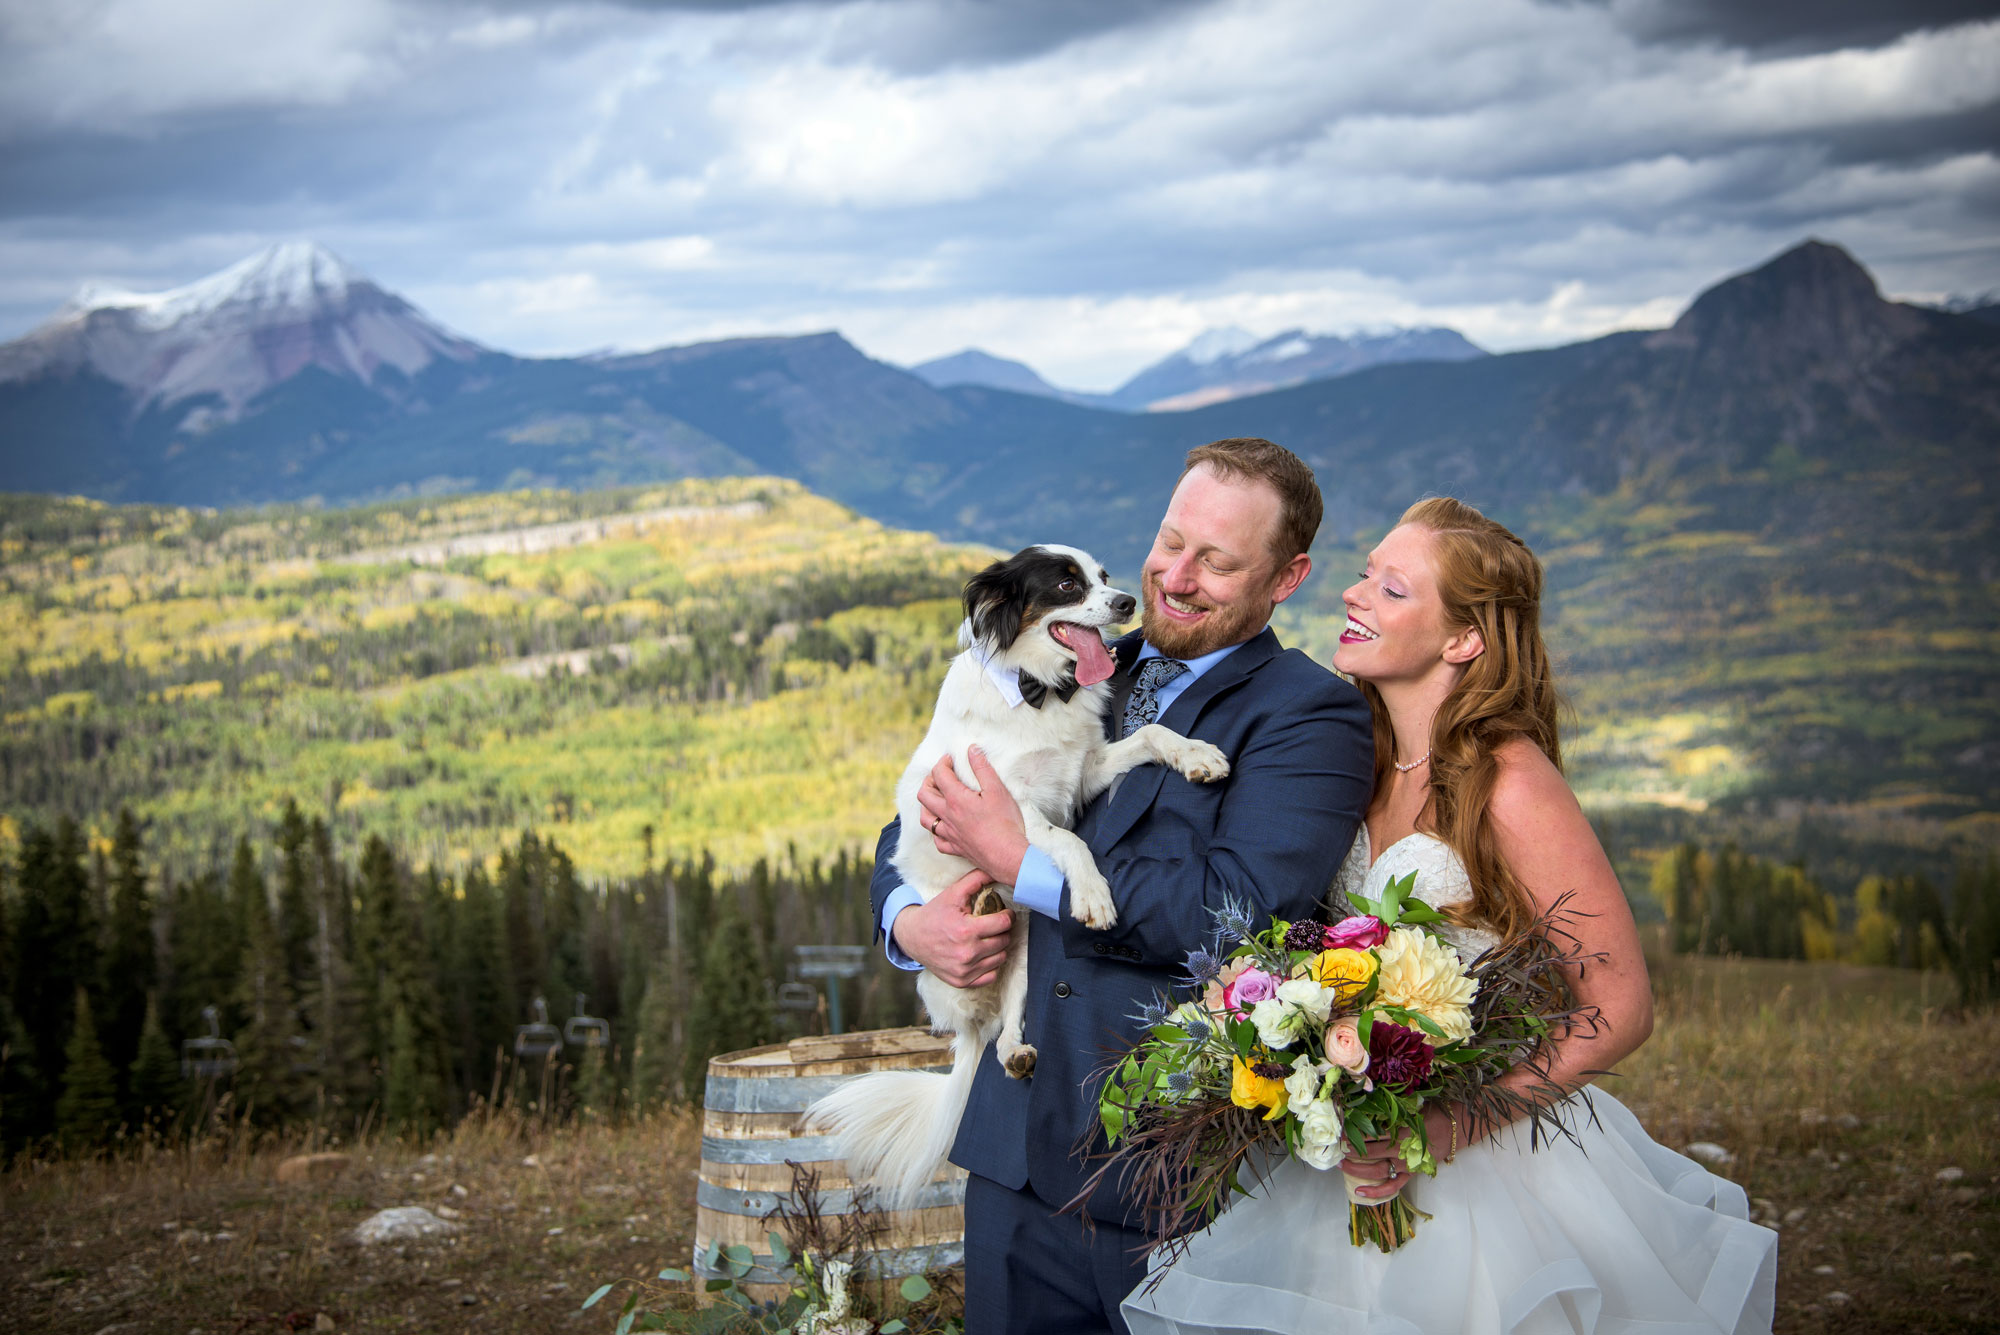 Bride, groom and dog at Purgatory Resort, Durango, Colorado